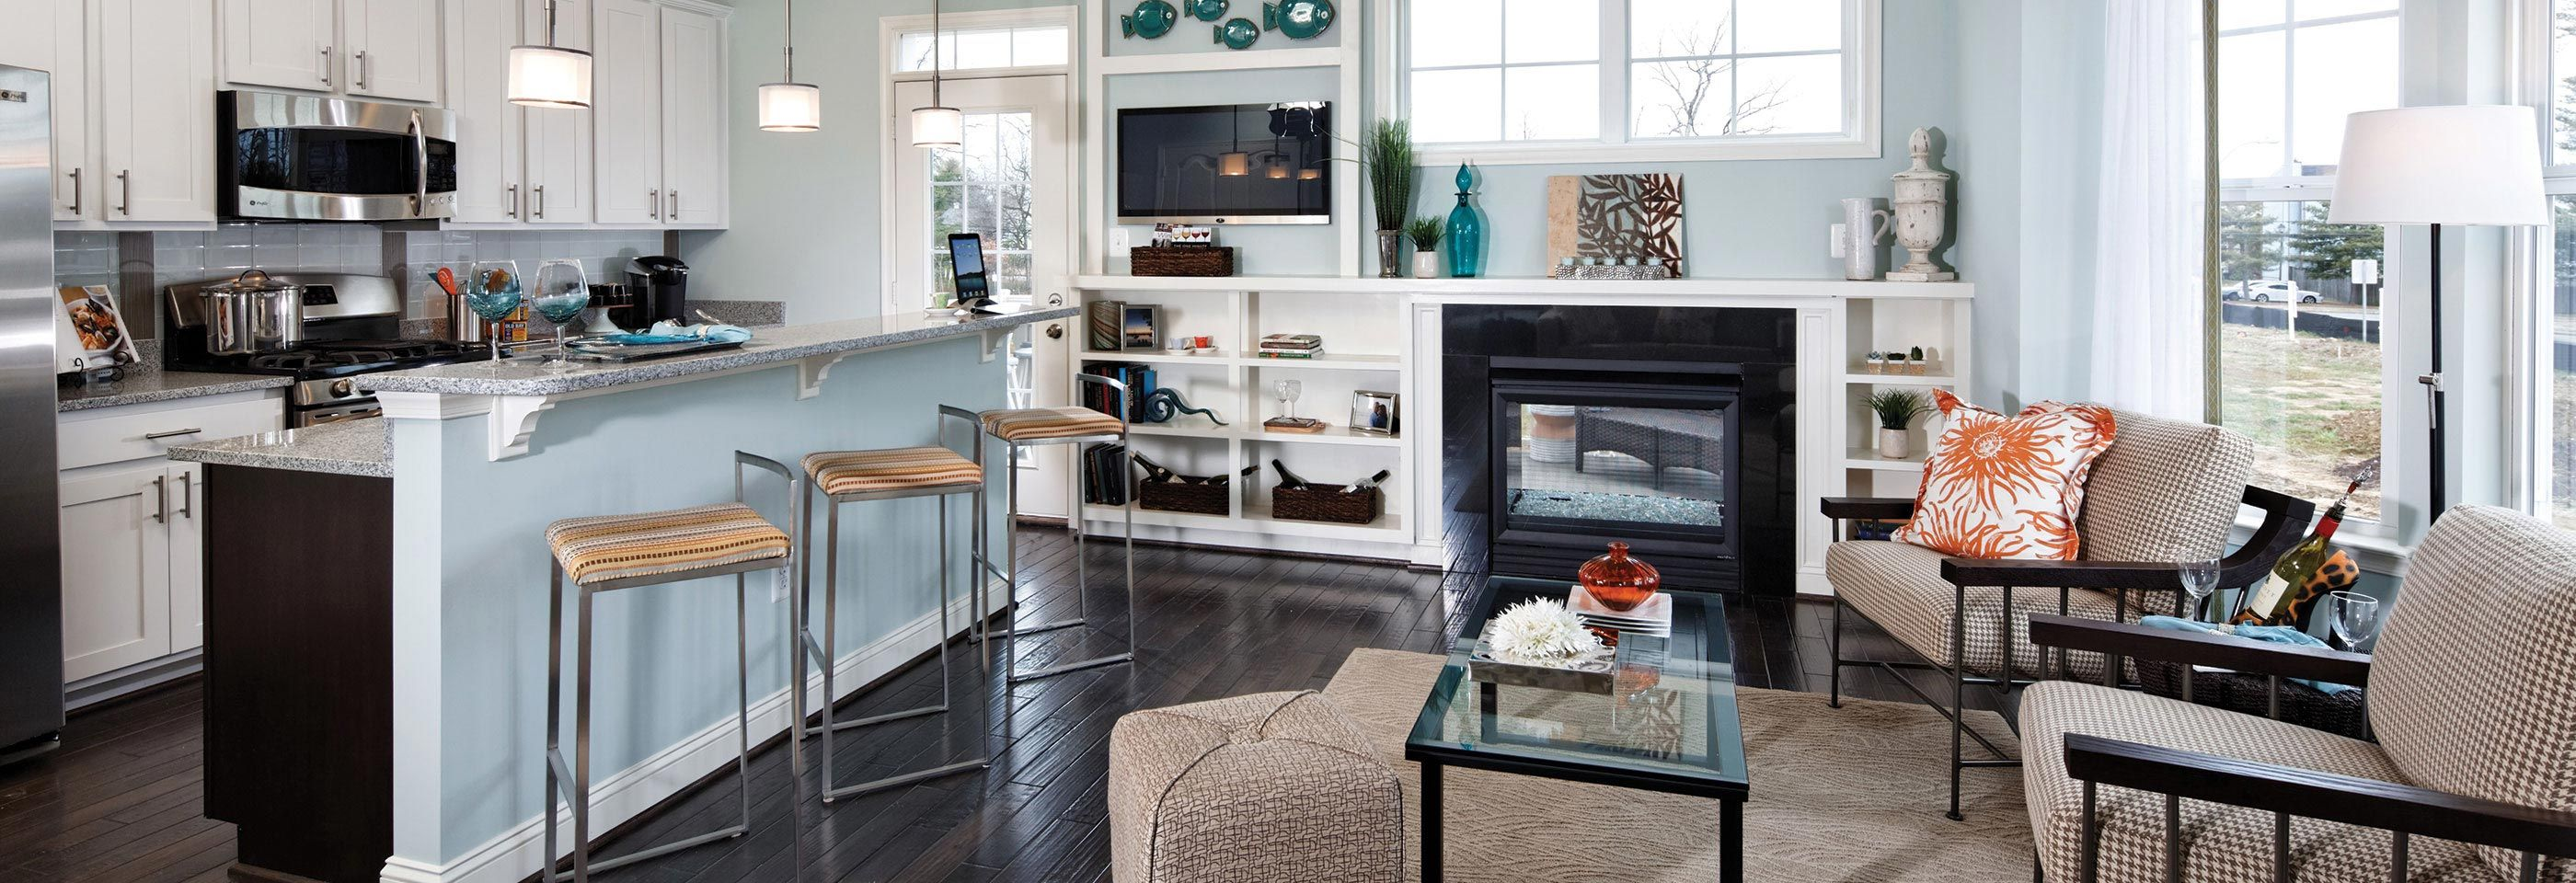 Primrose Hill (Towns) By Craftmark Homes, 21401 ...